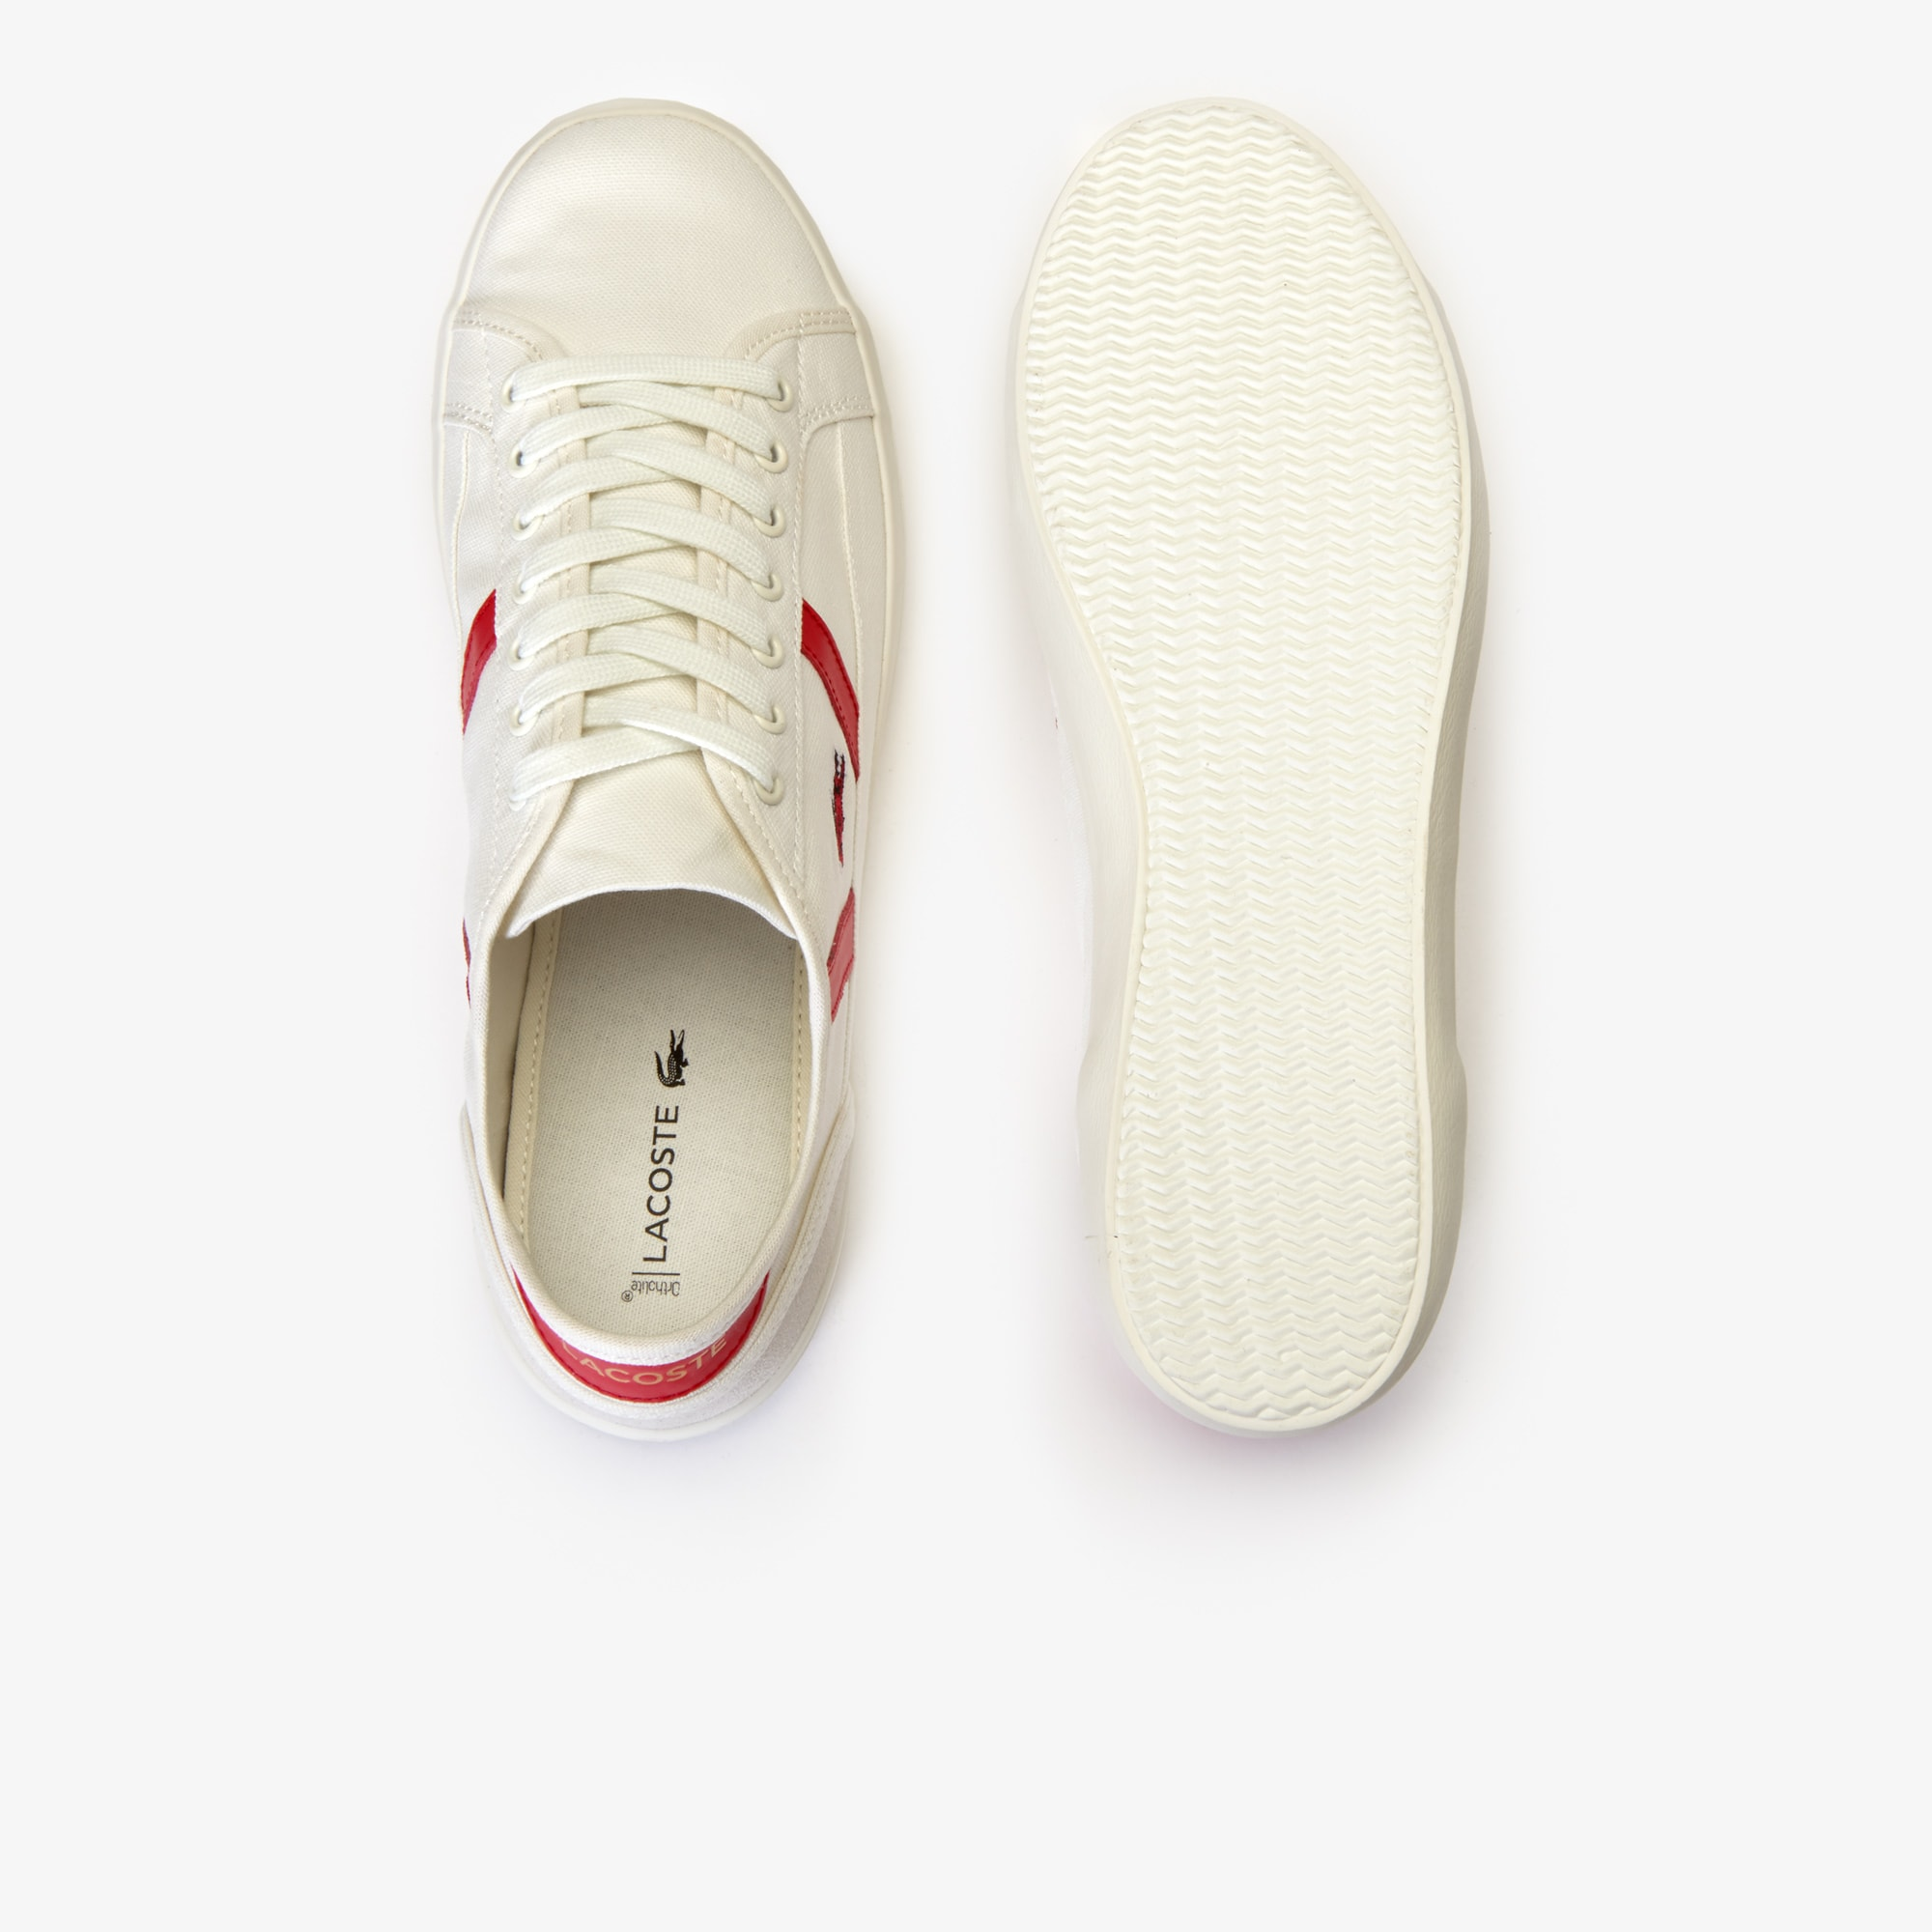 Men's Sideline Canvas and Leather Sneakers